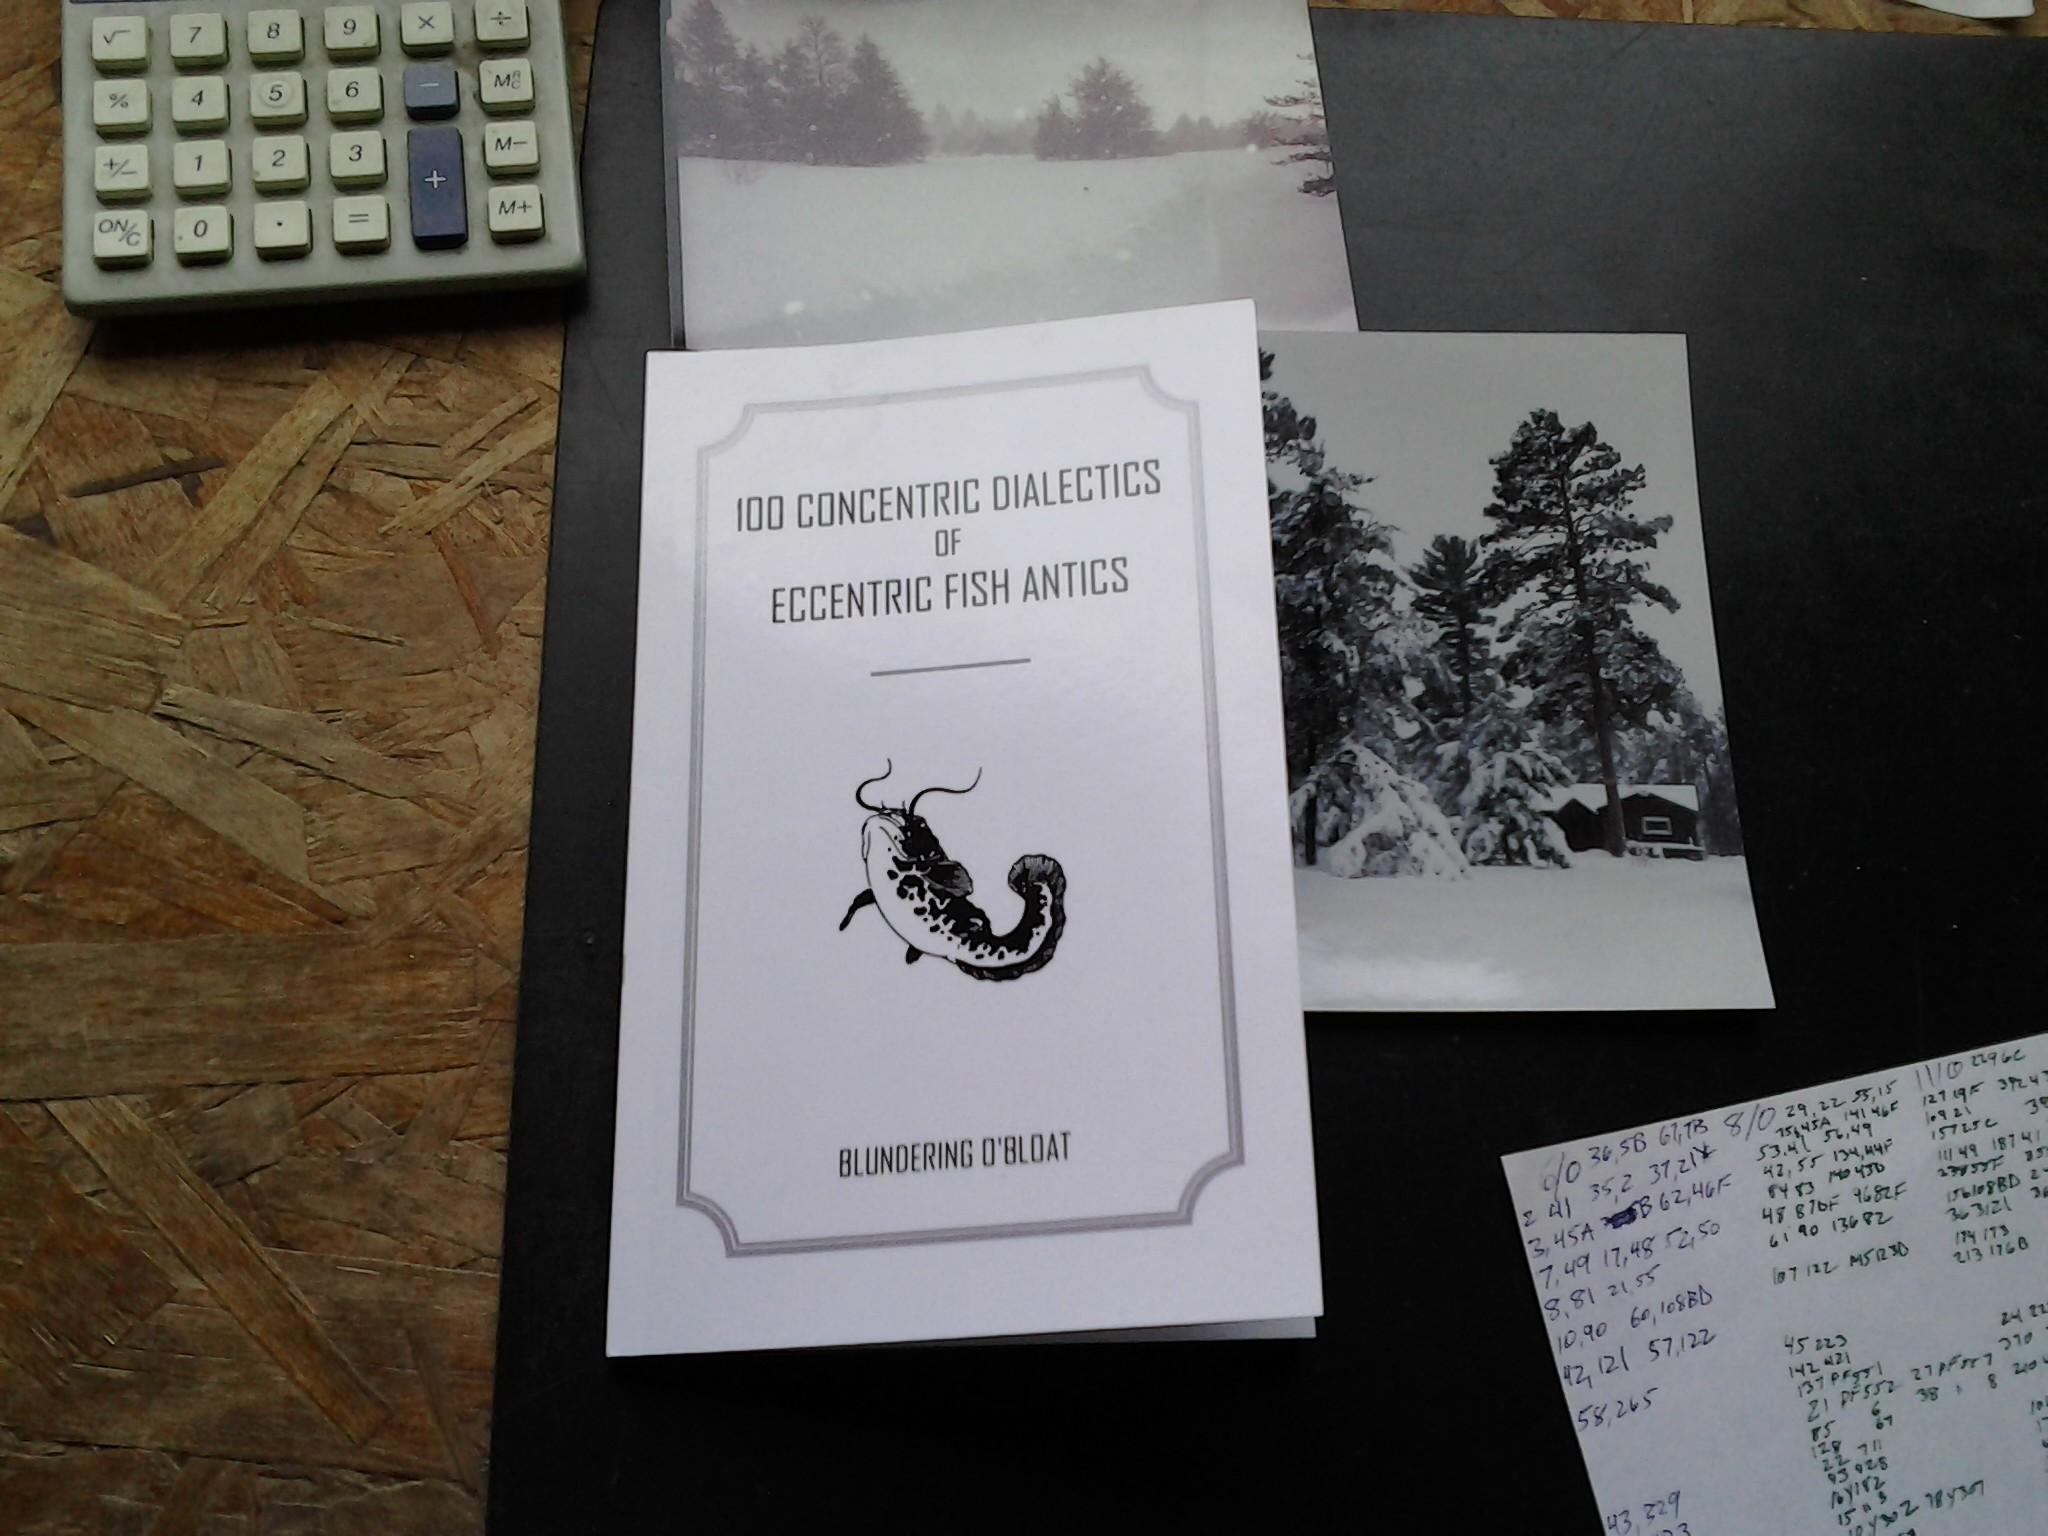 Namazu, O'Bloat and some friendly, resident denizens have foamed up their first book that addresses several ephemeral fish idioms. A fish eye view of all we do from a satellite dish in the weeds, a family @Tsu, where all these fish grew into bling slingin